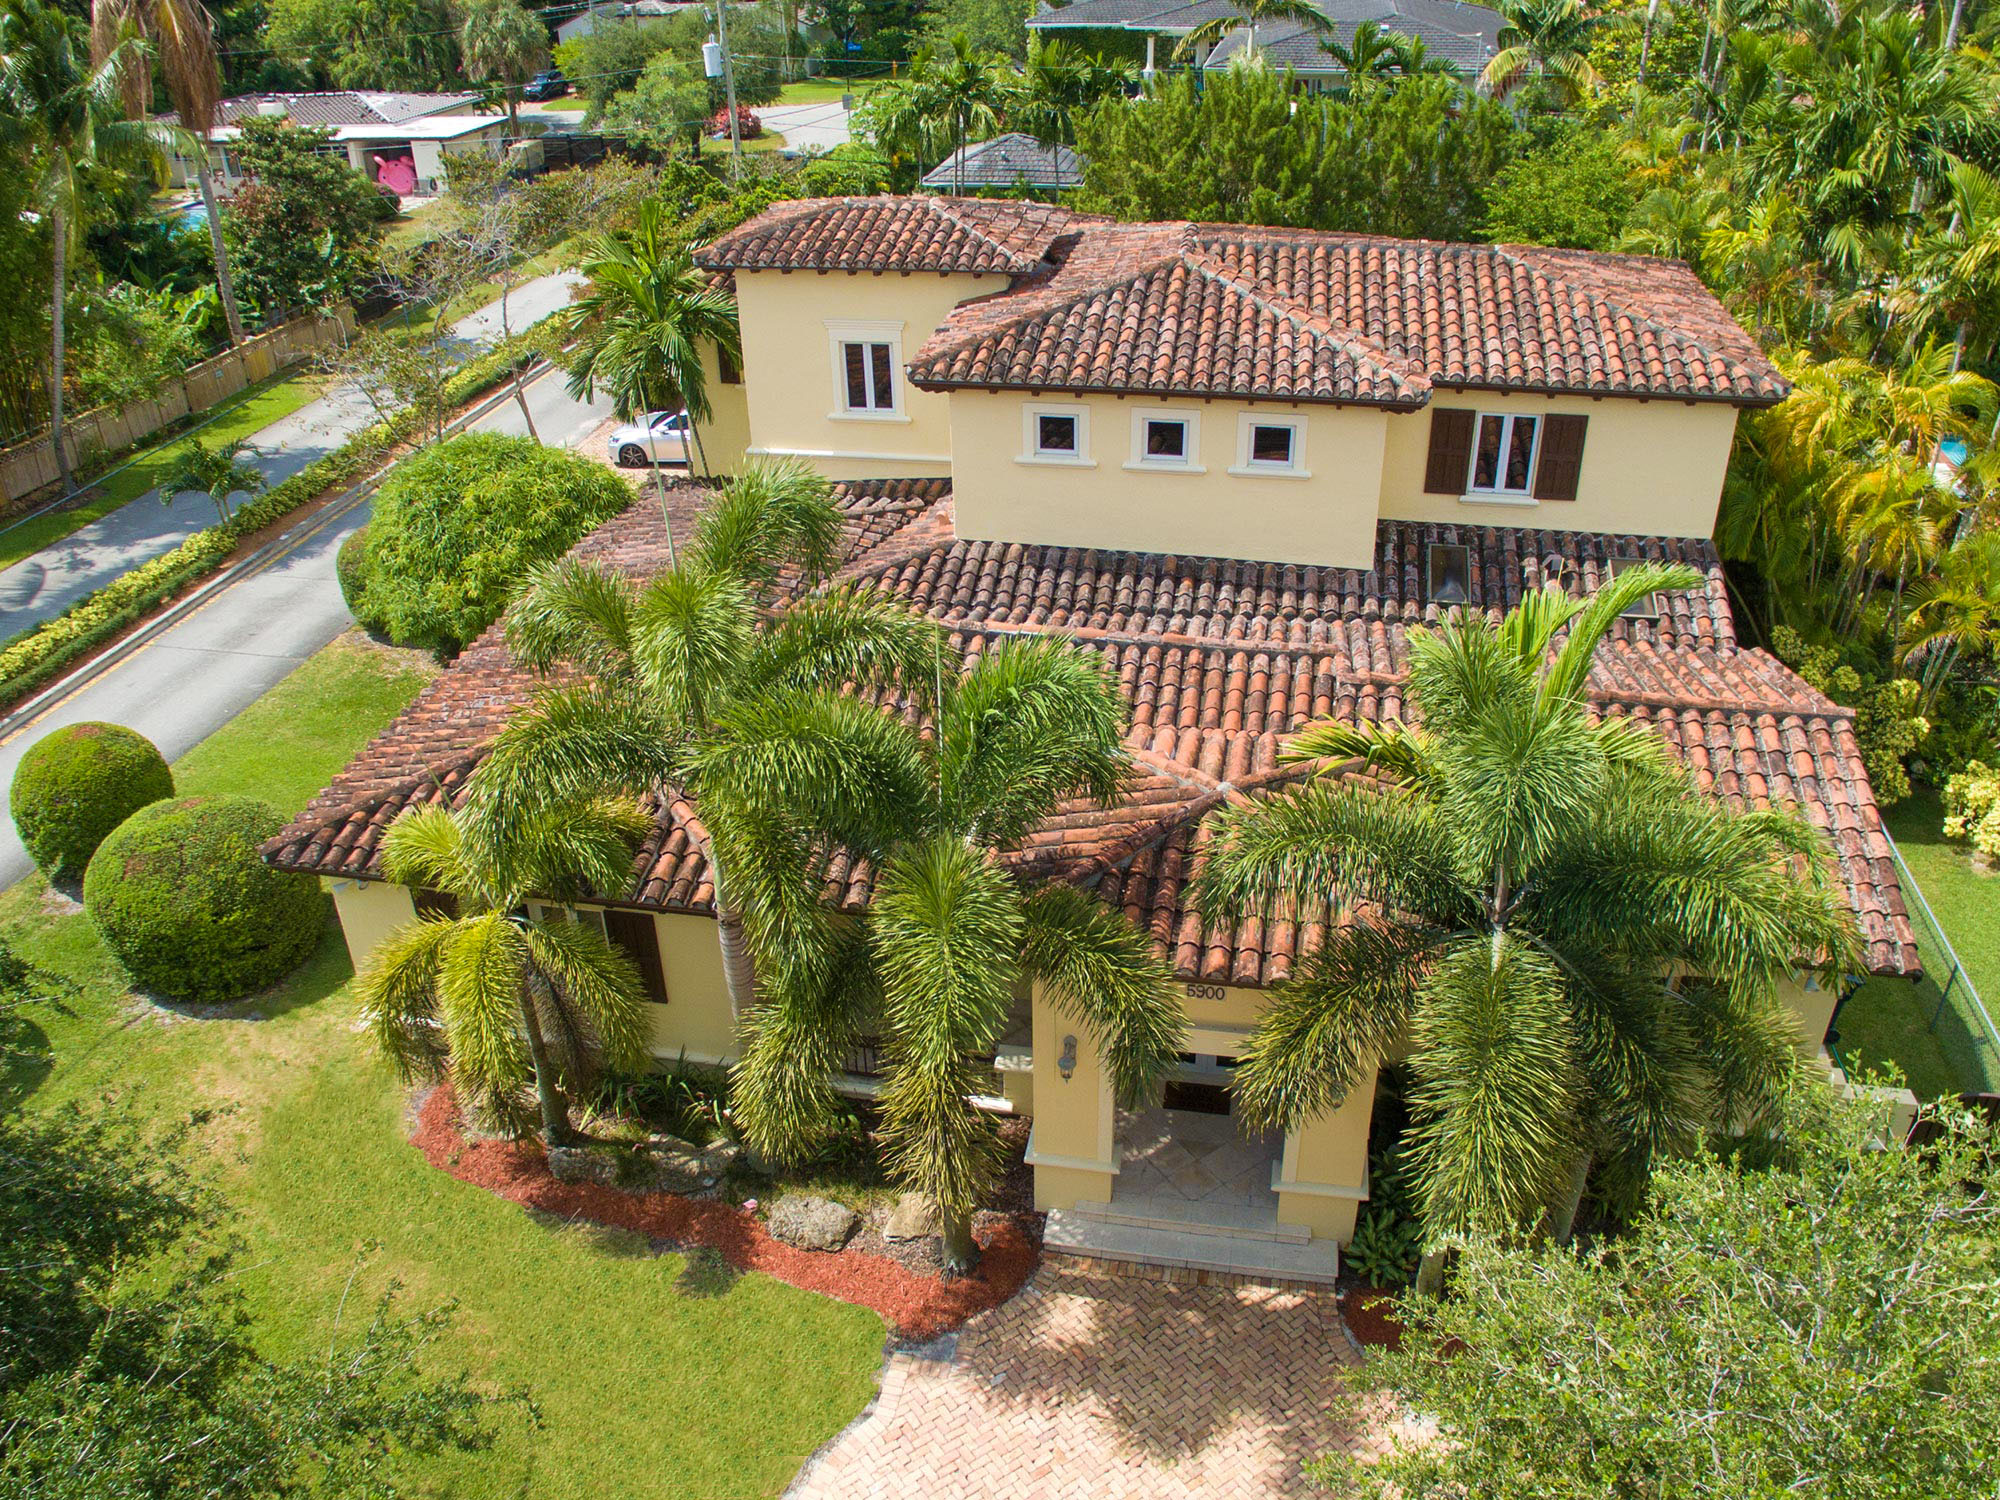 MiamiHal, top agent in South Miami, takes his drone up for a lofty photo of this wonderful estate.